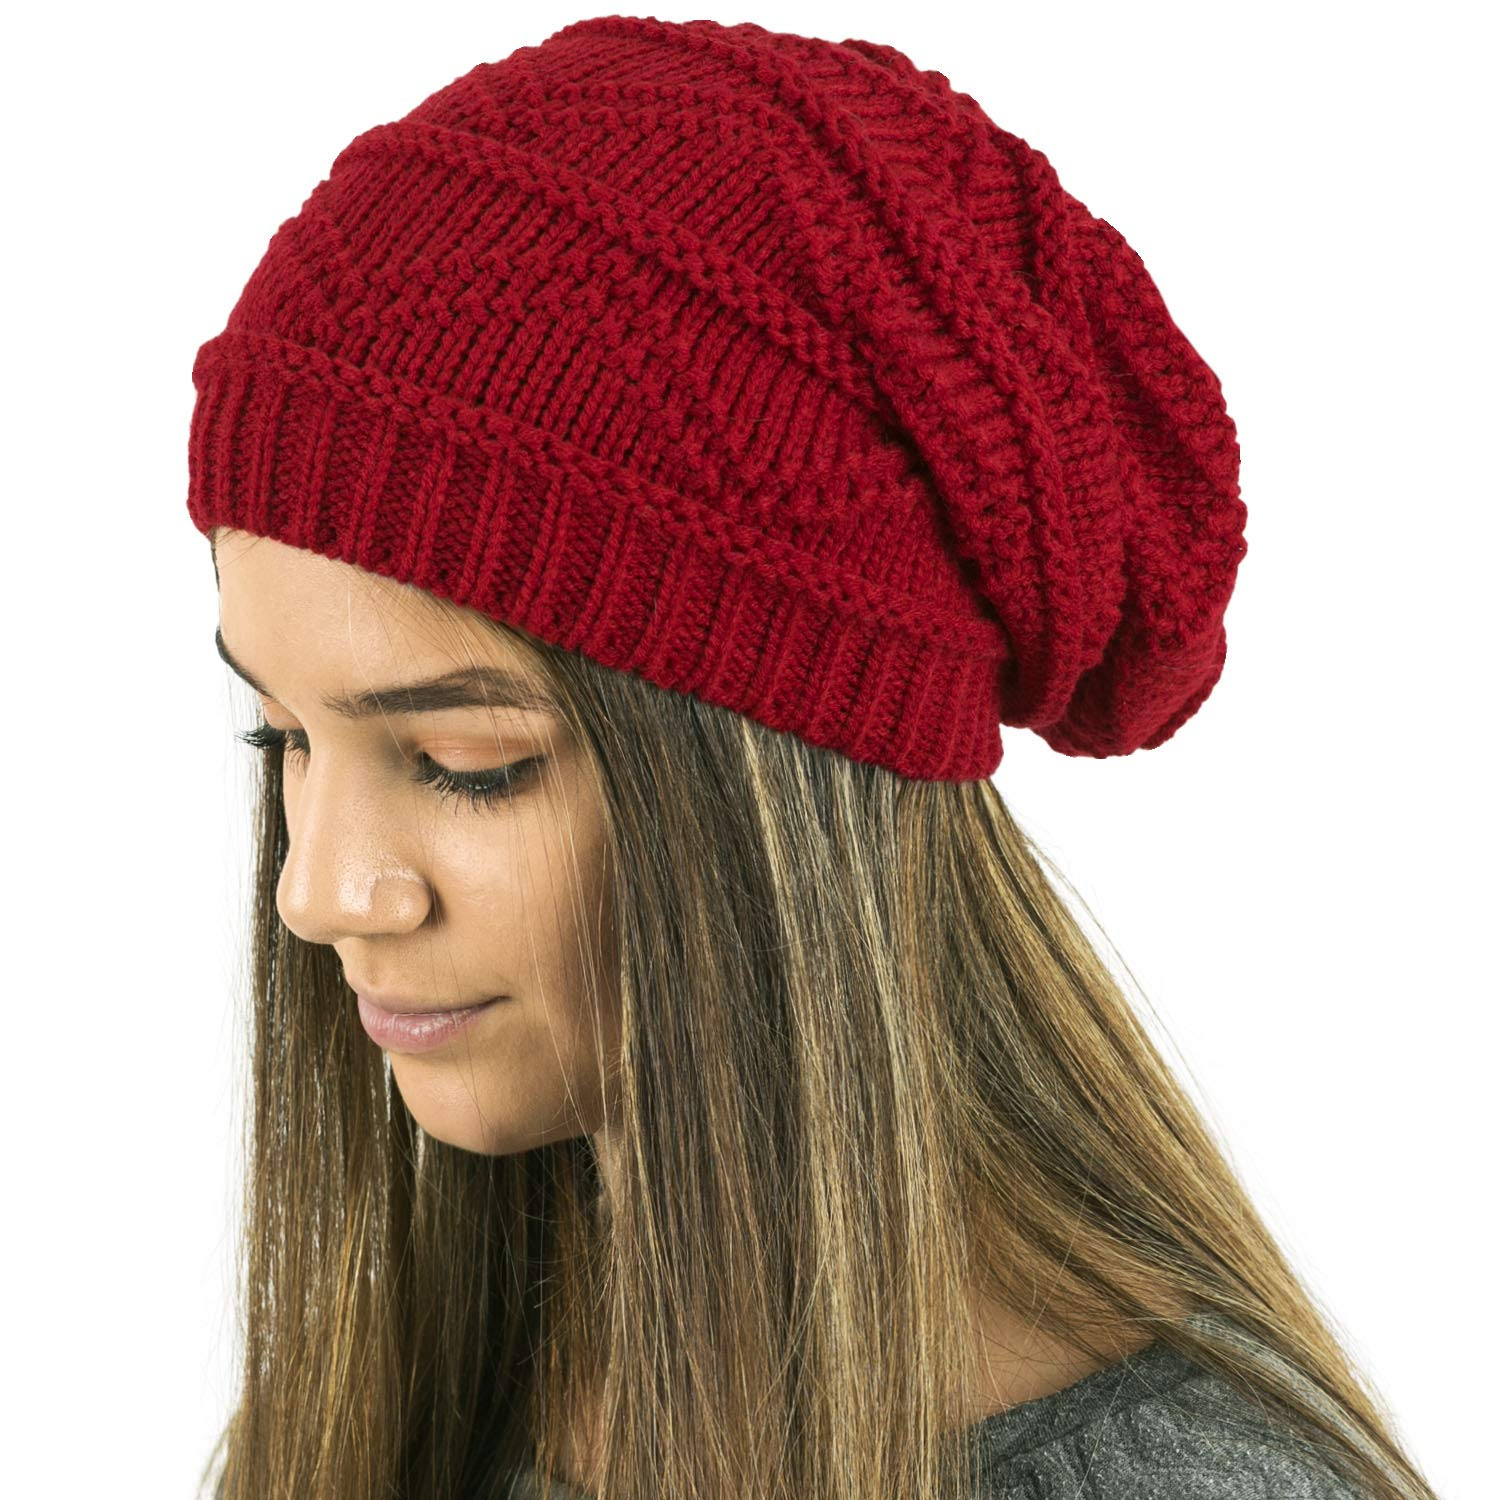 44e7e0aab49725 Ladies Knit Slouch Winter Hat/Beanie - RED at Amazon Women's Clothing store: